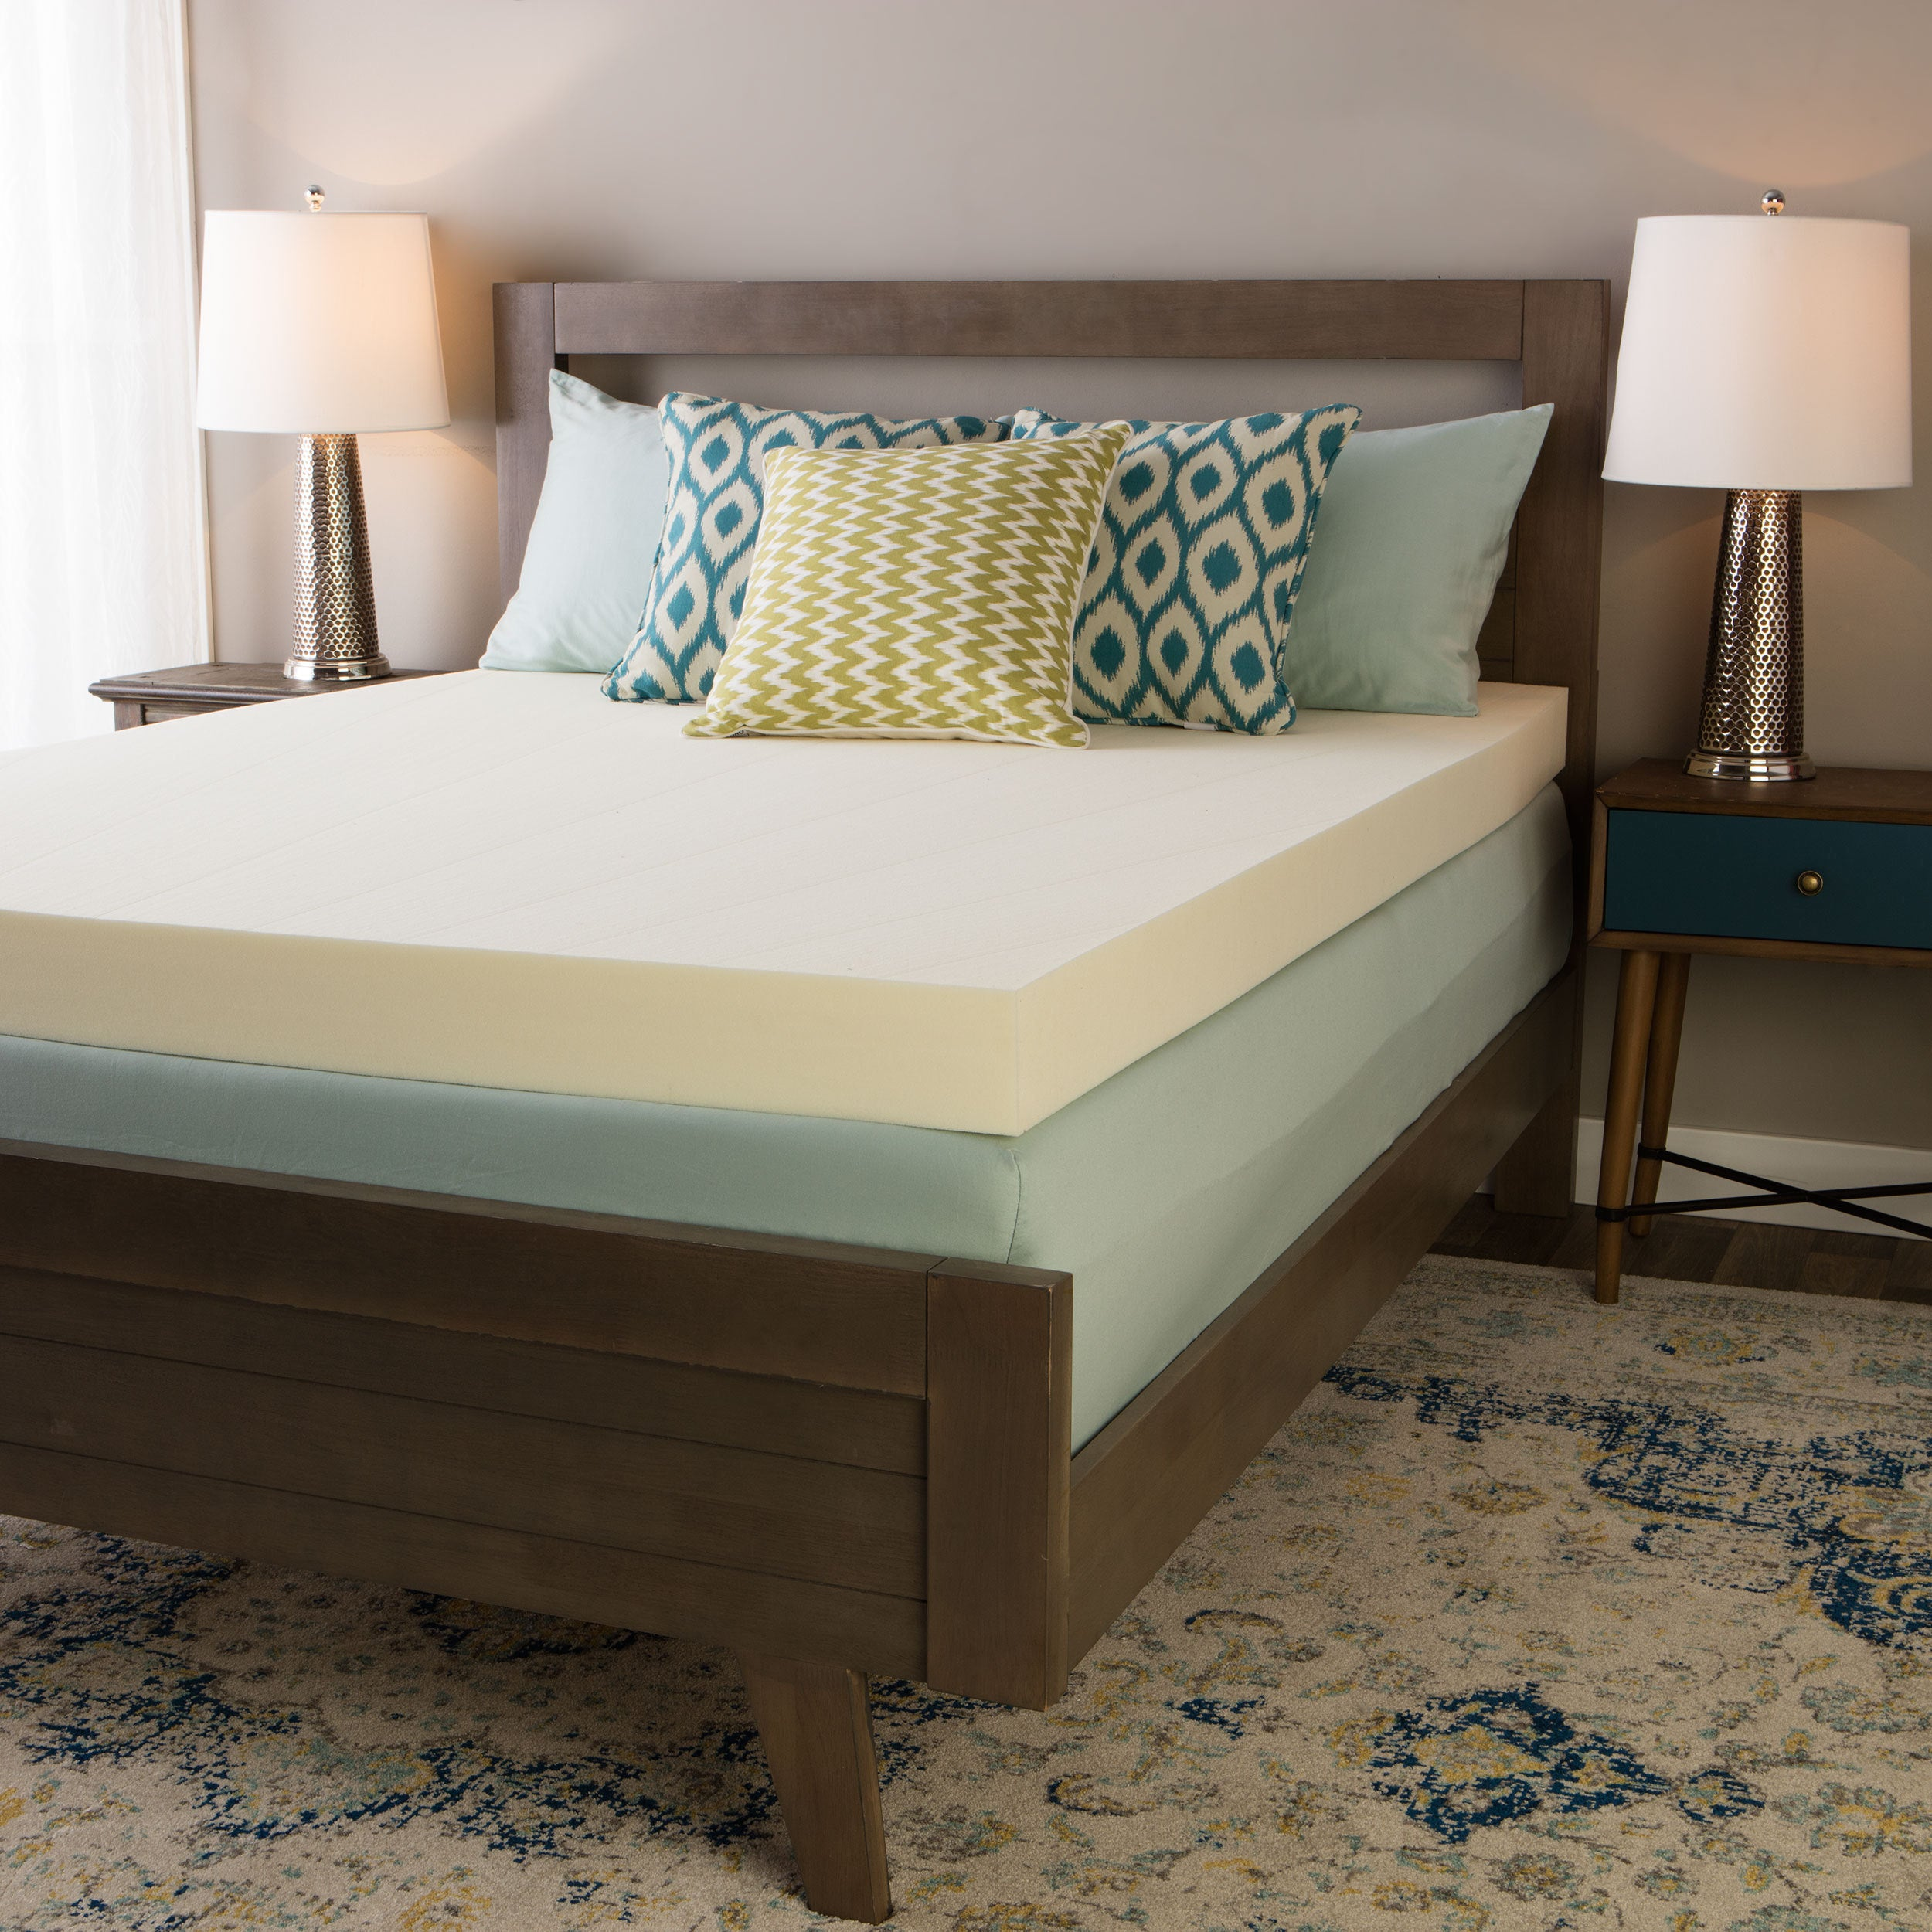 Touch of fort Ultimate 4 inch Visco Memory Foam Mattress Topper